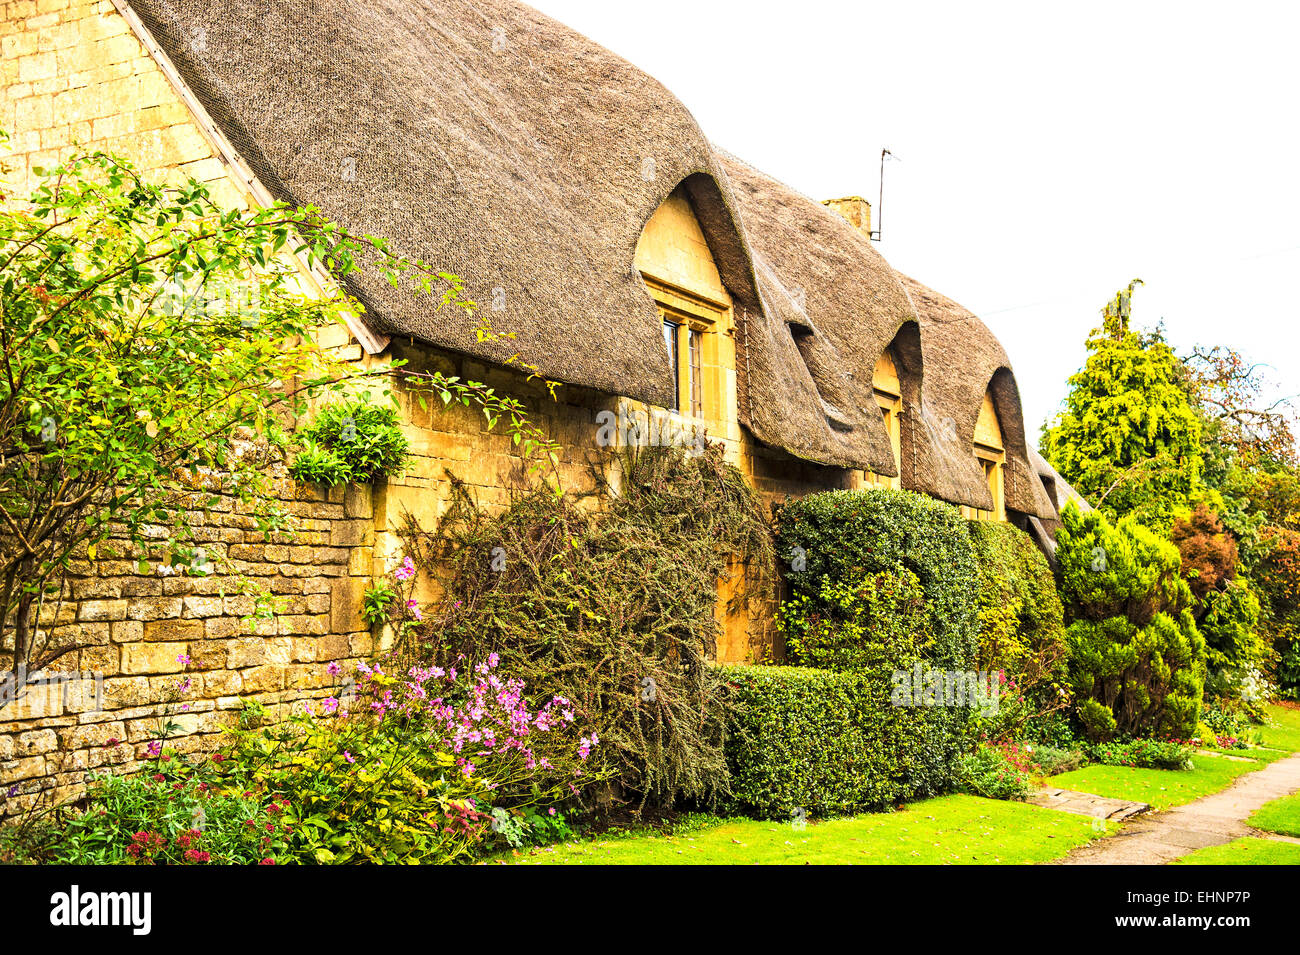 Thatched Cottage in the Cotswolds near Chipping Camden Stock Photo